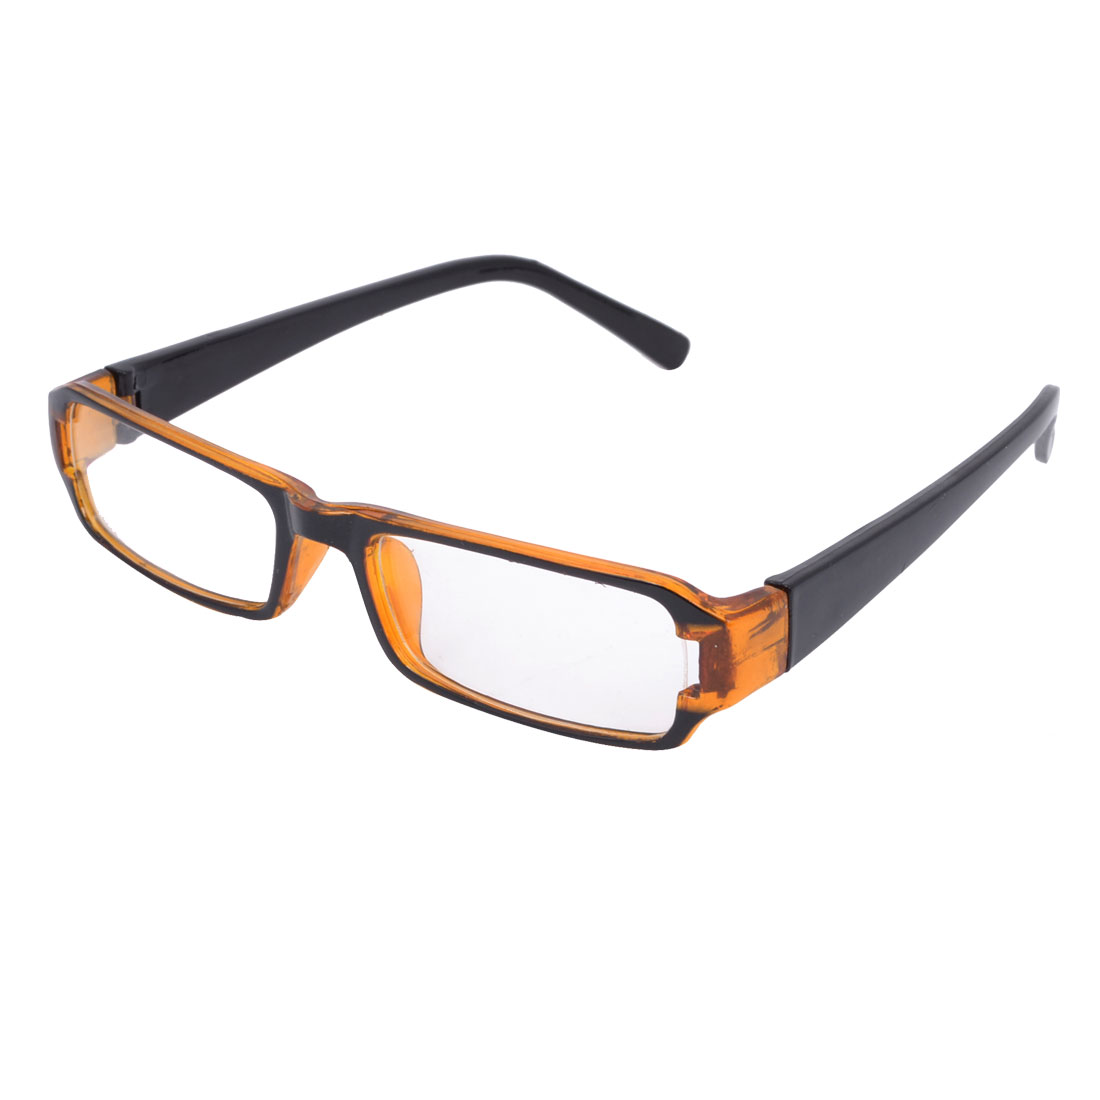 Brown Plastic Slim Temples Single Bridge Rectangular Clear Lens Plain Glasses for Lady